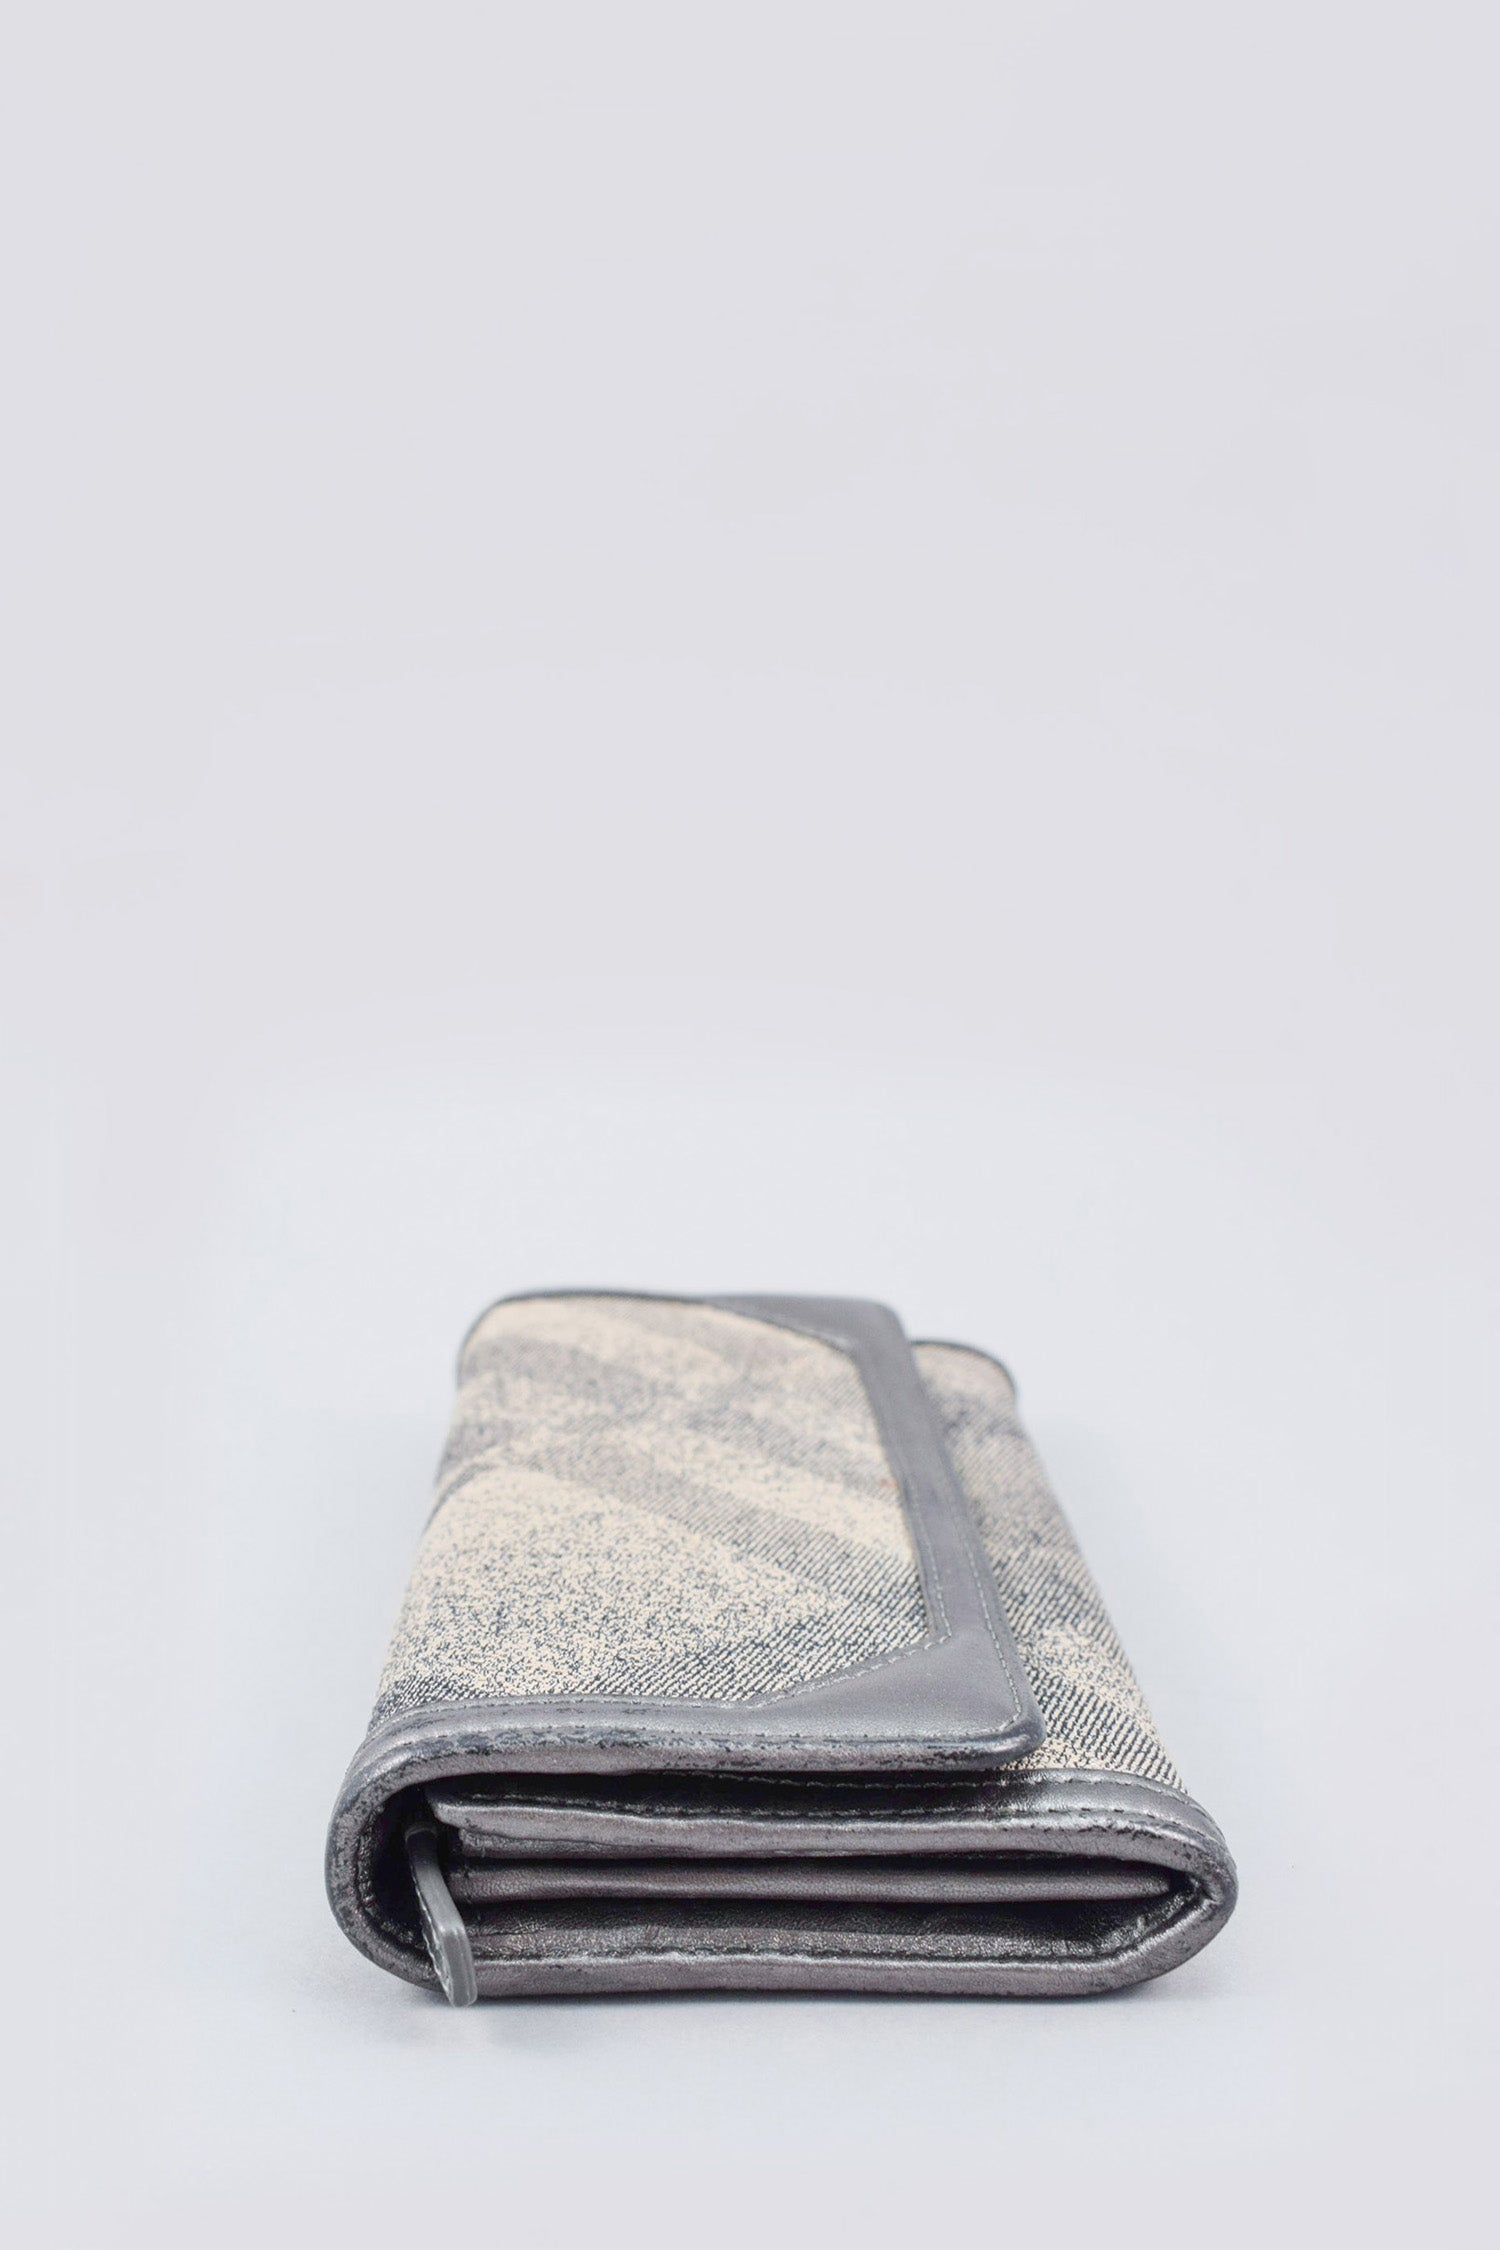 Burberry Grey/Cream Nova Check Glitter Wallet